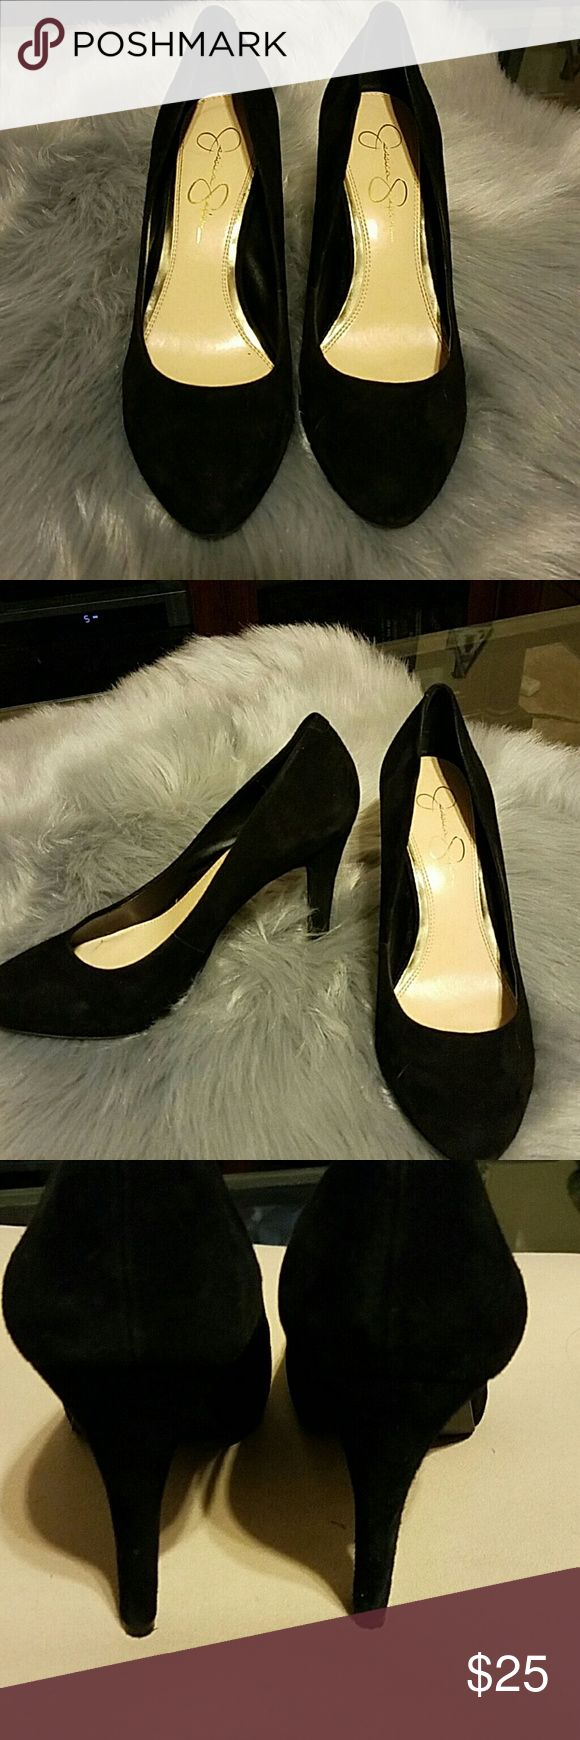 Jessica Simpson heels Excellent condition Jessica Simpson black suede pumps! Very comfortable with 4 inch heel. I have several pairs of black pumps so this pair is like brand new and had only been worn once. No box available. Jessica Simpson Shoes Heels